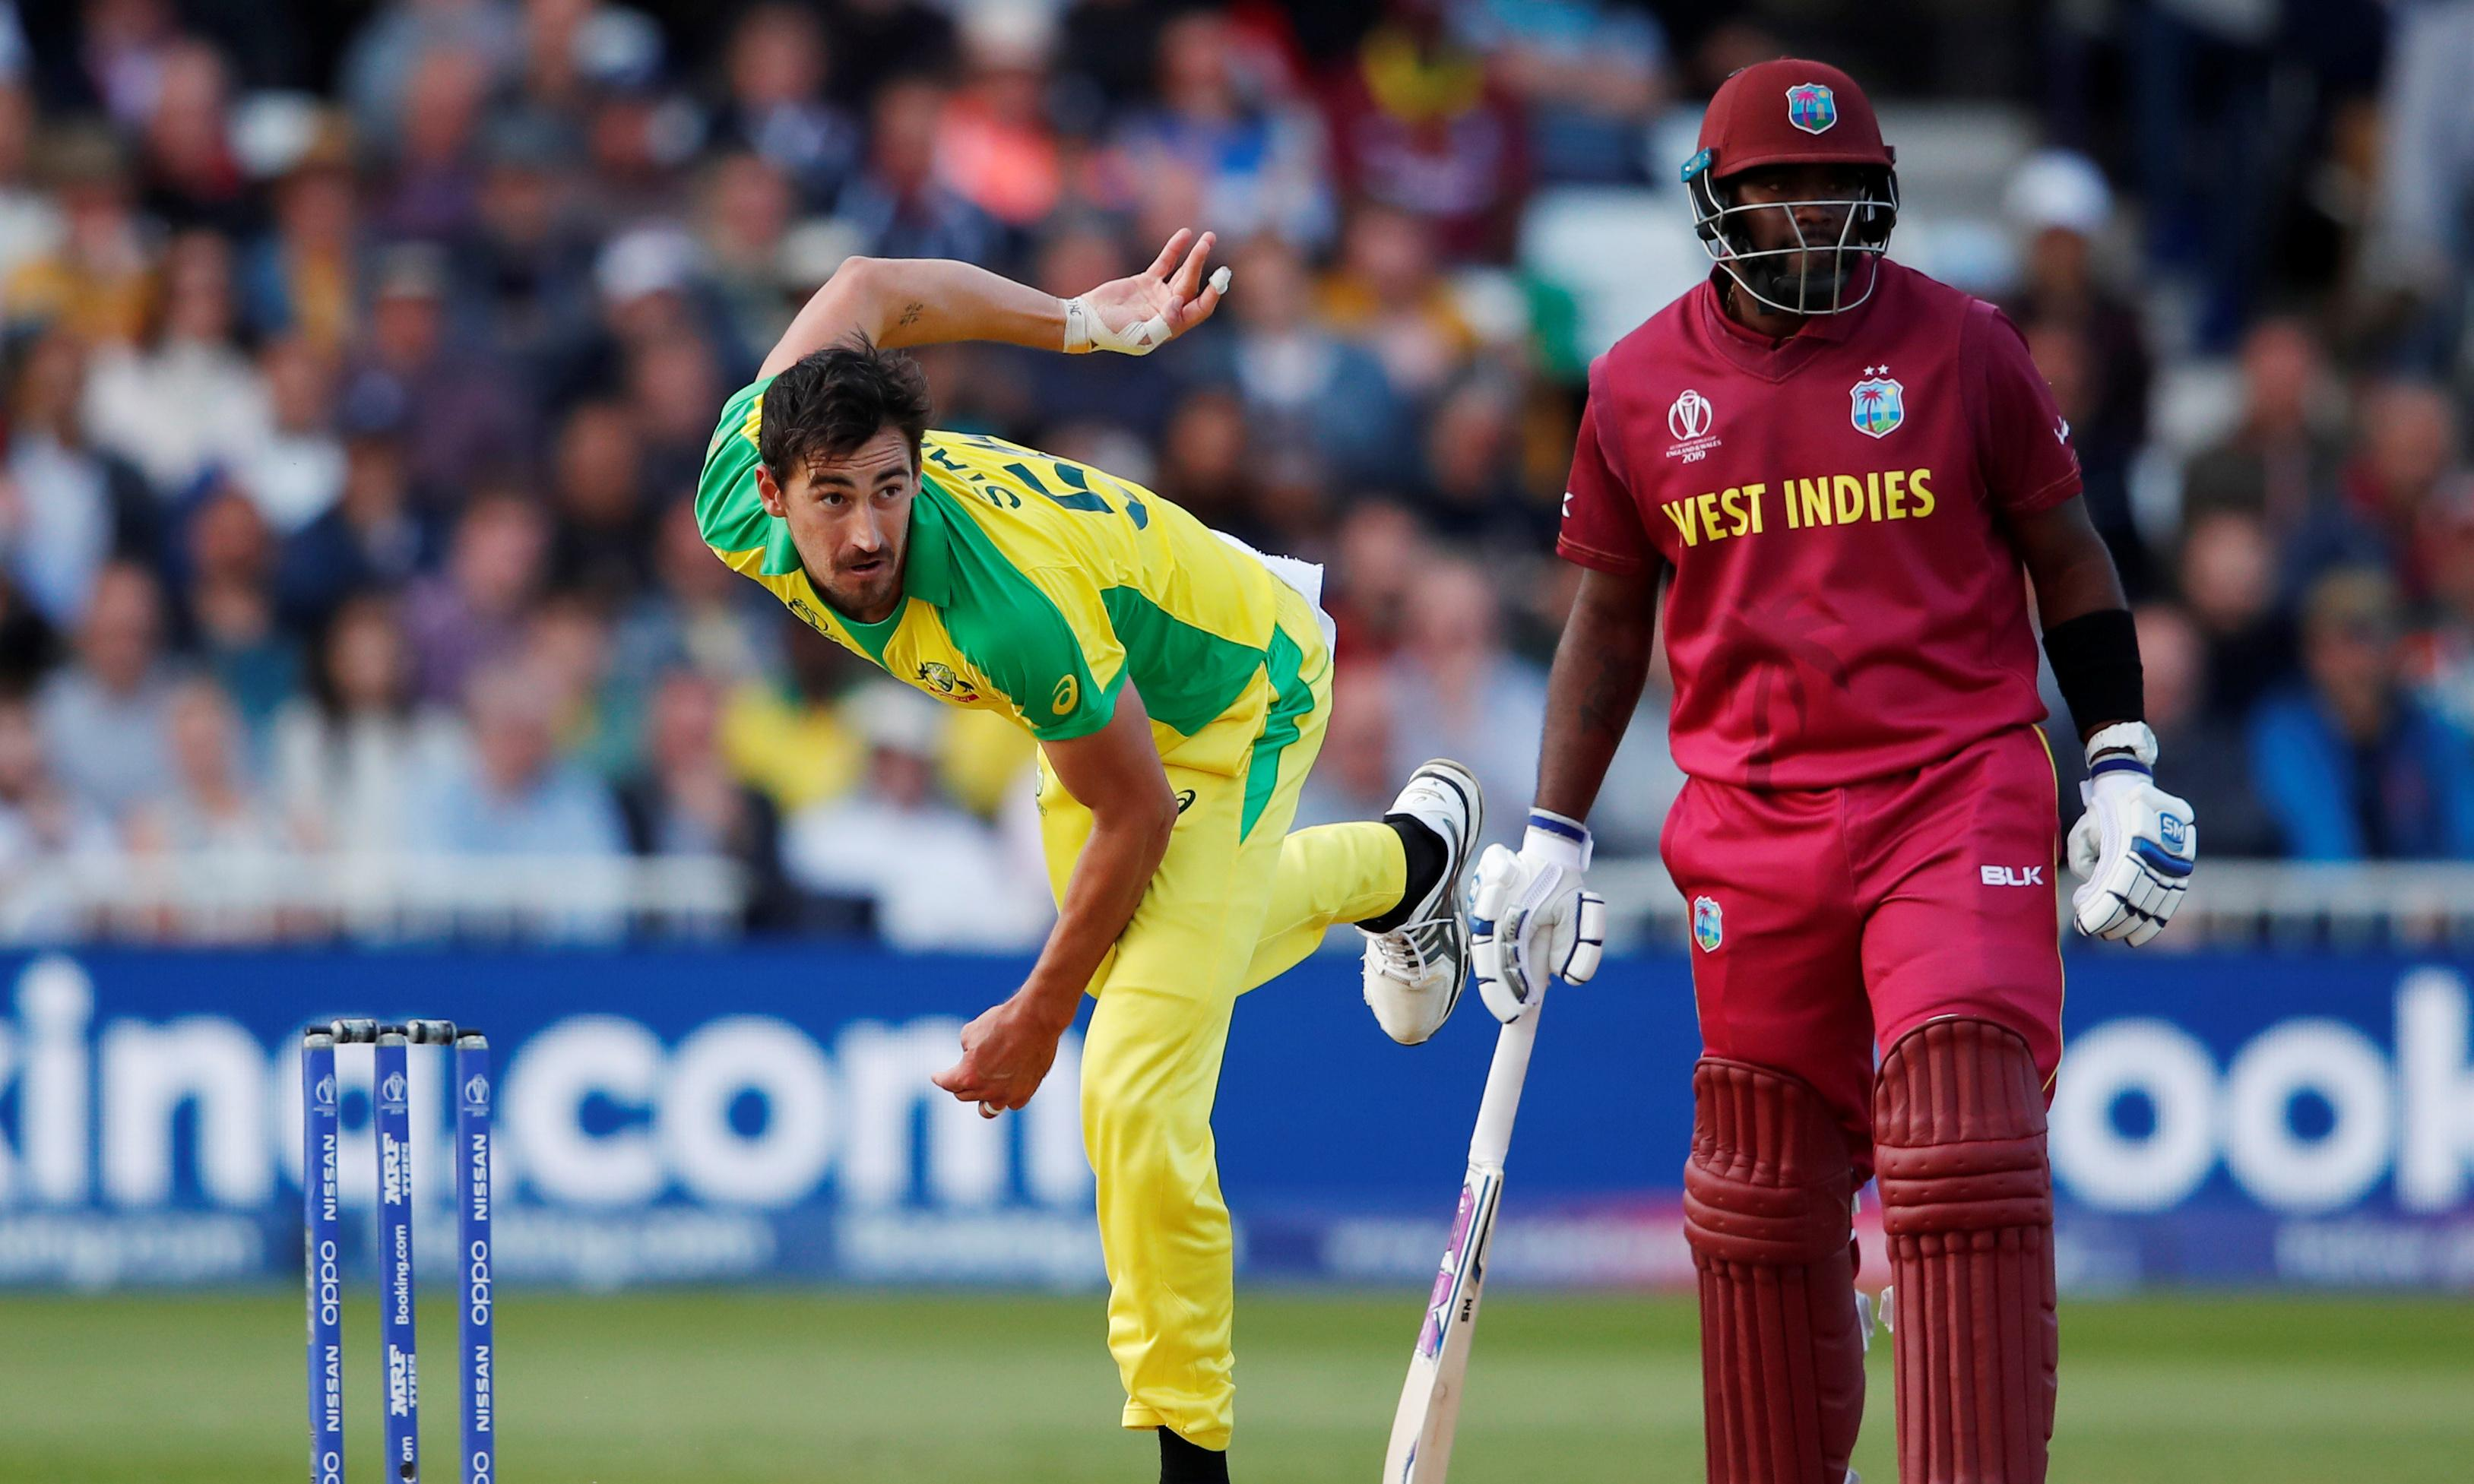 Mitchell Starc mauls West Indies in gutsy World Cup win for Australia